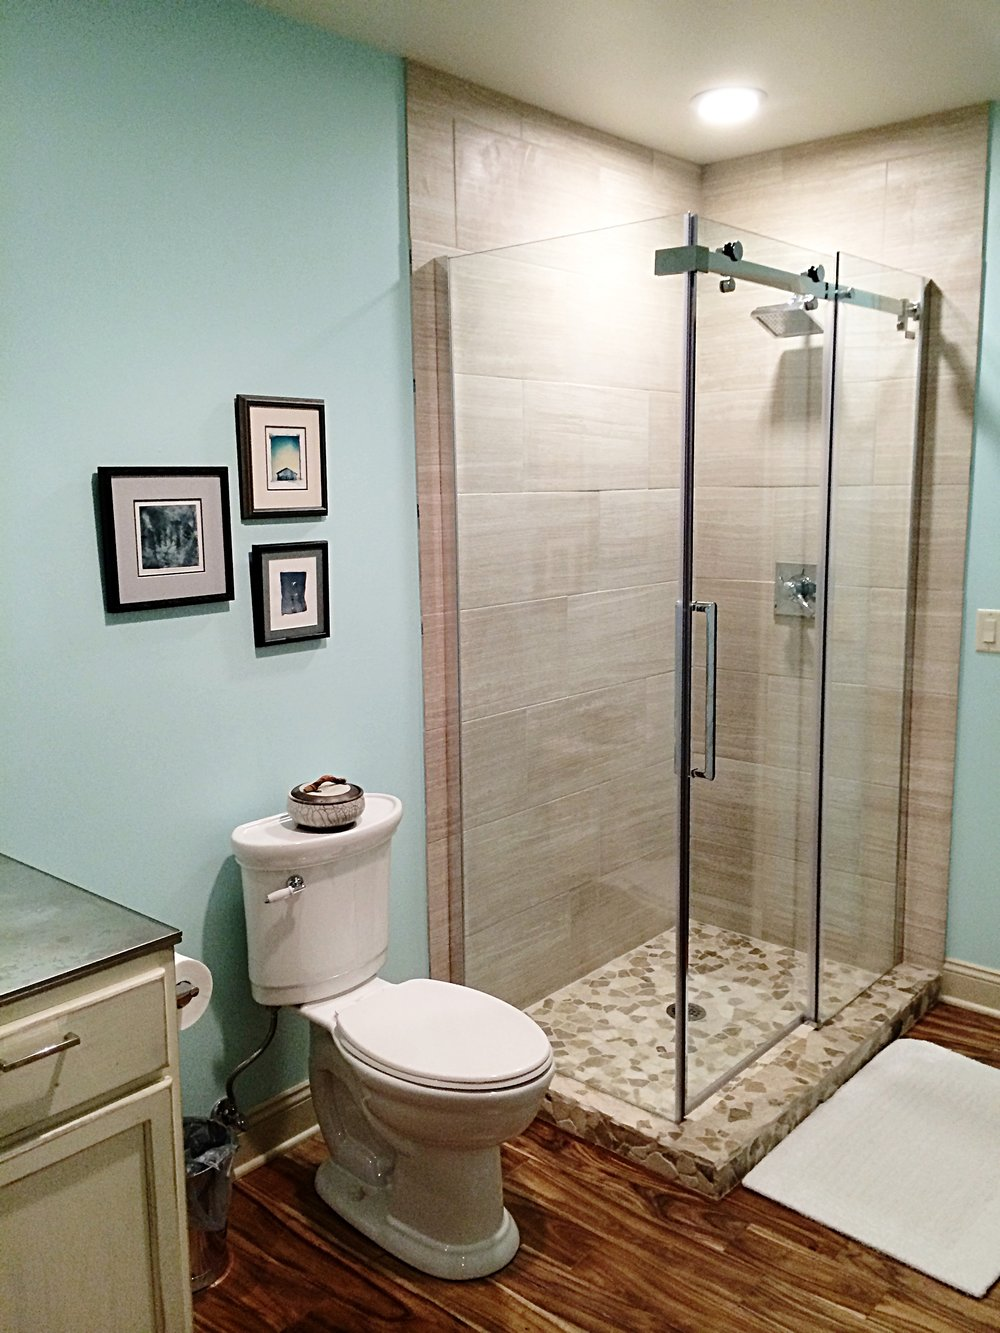 Tumbled stone flooring in the shower with a soft linen weave wall tile is the perfect contrast to the acacia wood floors and vintage style vanity!